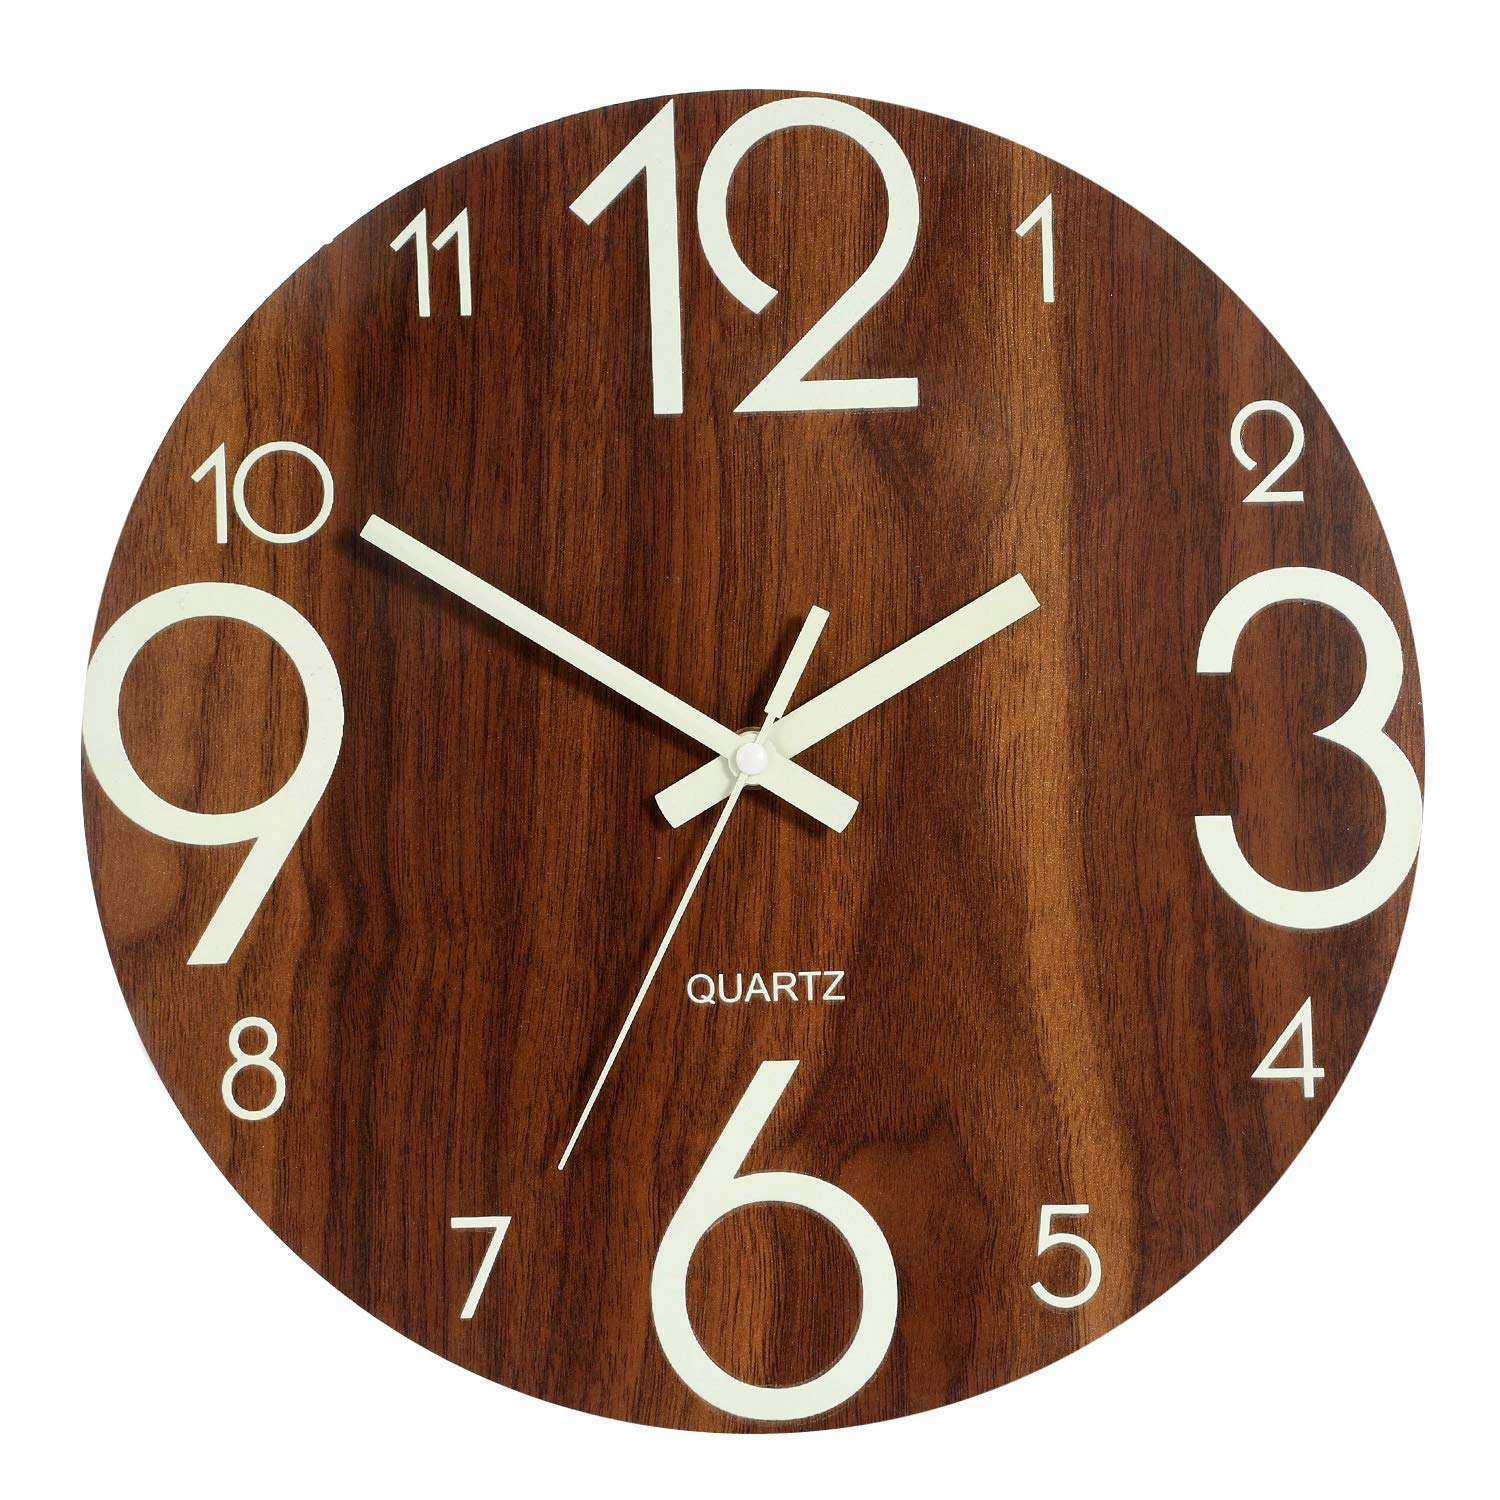 12/'/' Silent Non-Ticking Wall Clock Stereo Number Modern Round Living Room Clocks